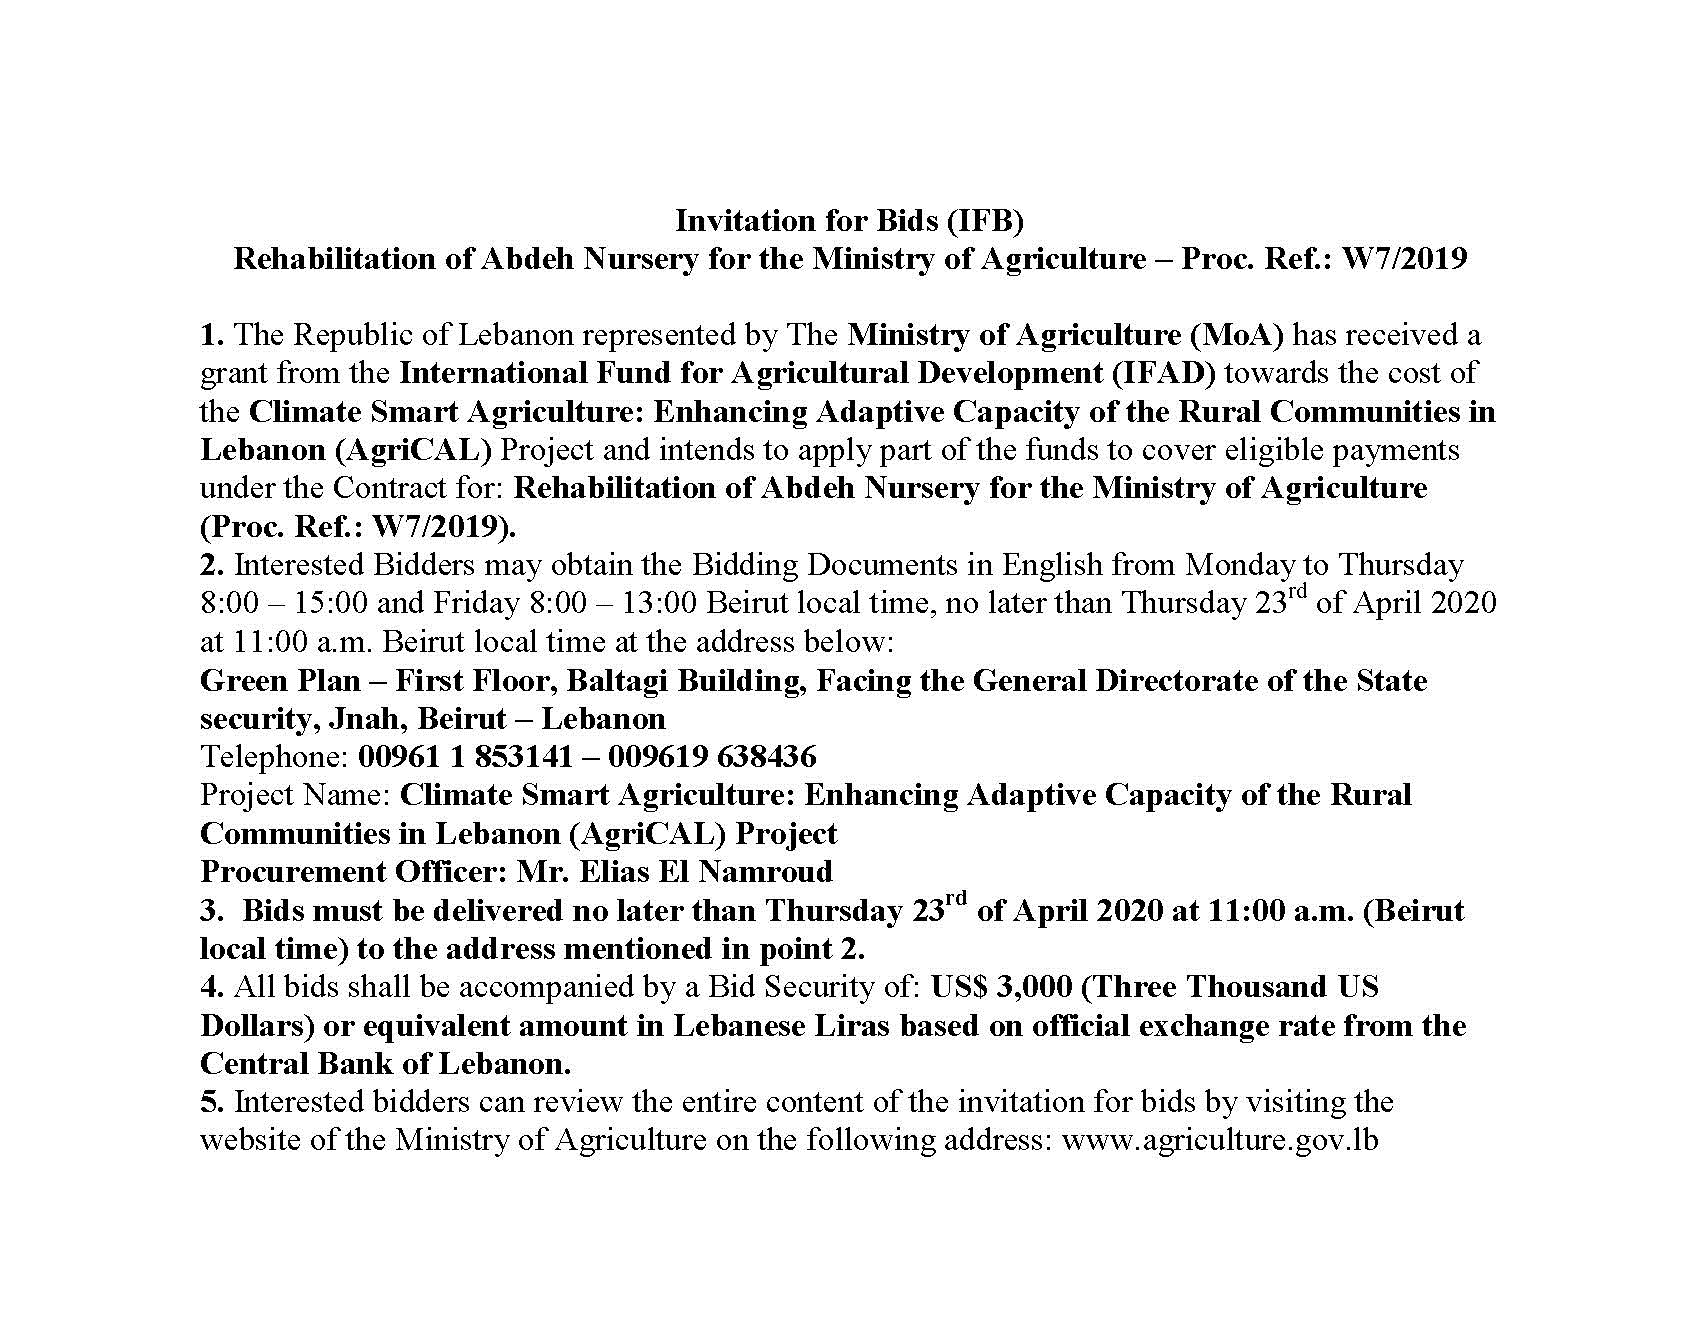 Invitation for Bids (IFB) - Rehabilitation of Abdeh Nursery for the Ministry of Agriculture – Proc. Ref.: W7/2019